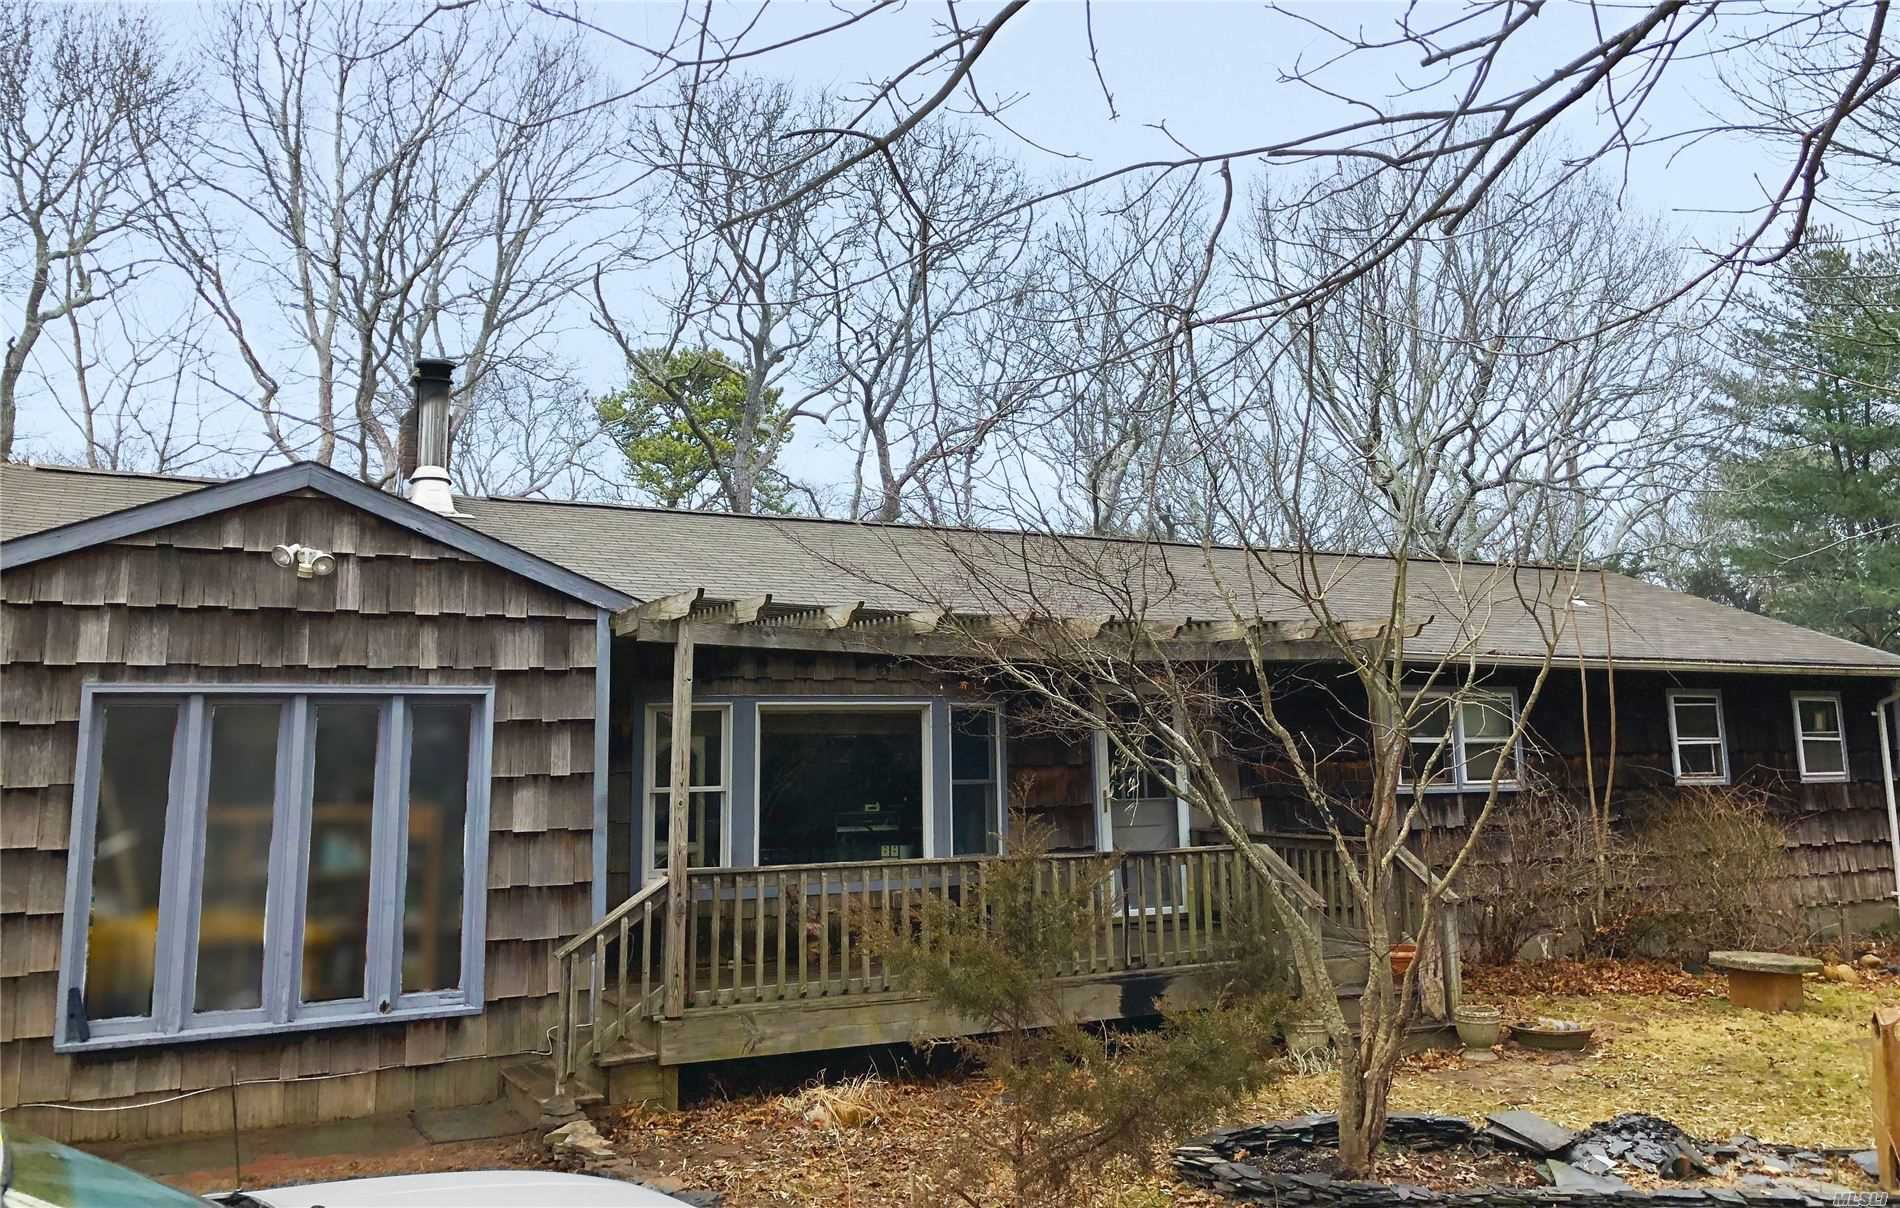 23A Gravel Hill Road, Hampton Bays, NY 11946 - MLS#: 3205113